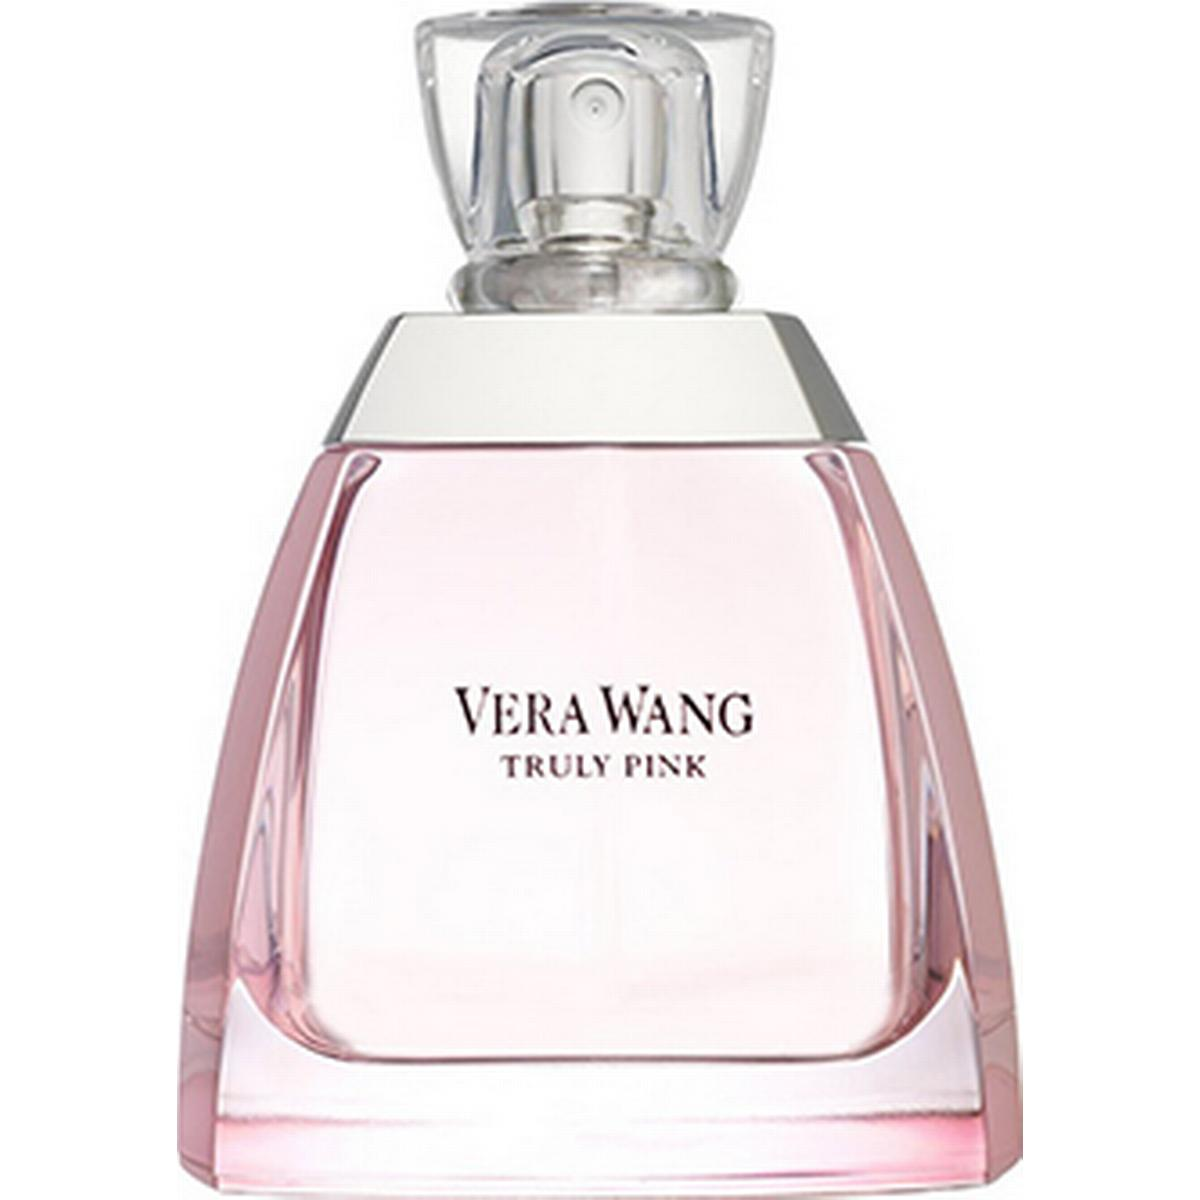 Vera Compare Wang Prices On Market Fragrance Best The Pricerunner 0O8nwPk